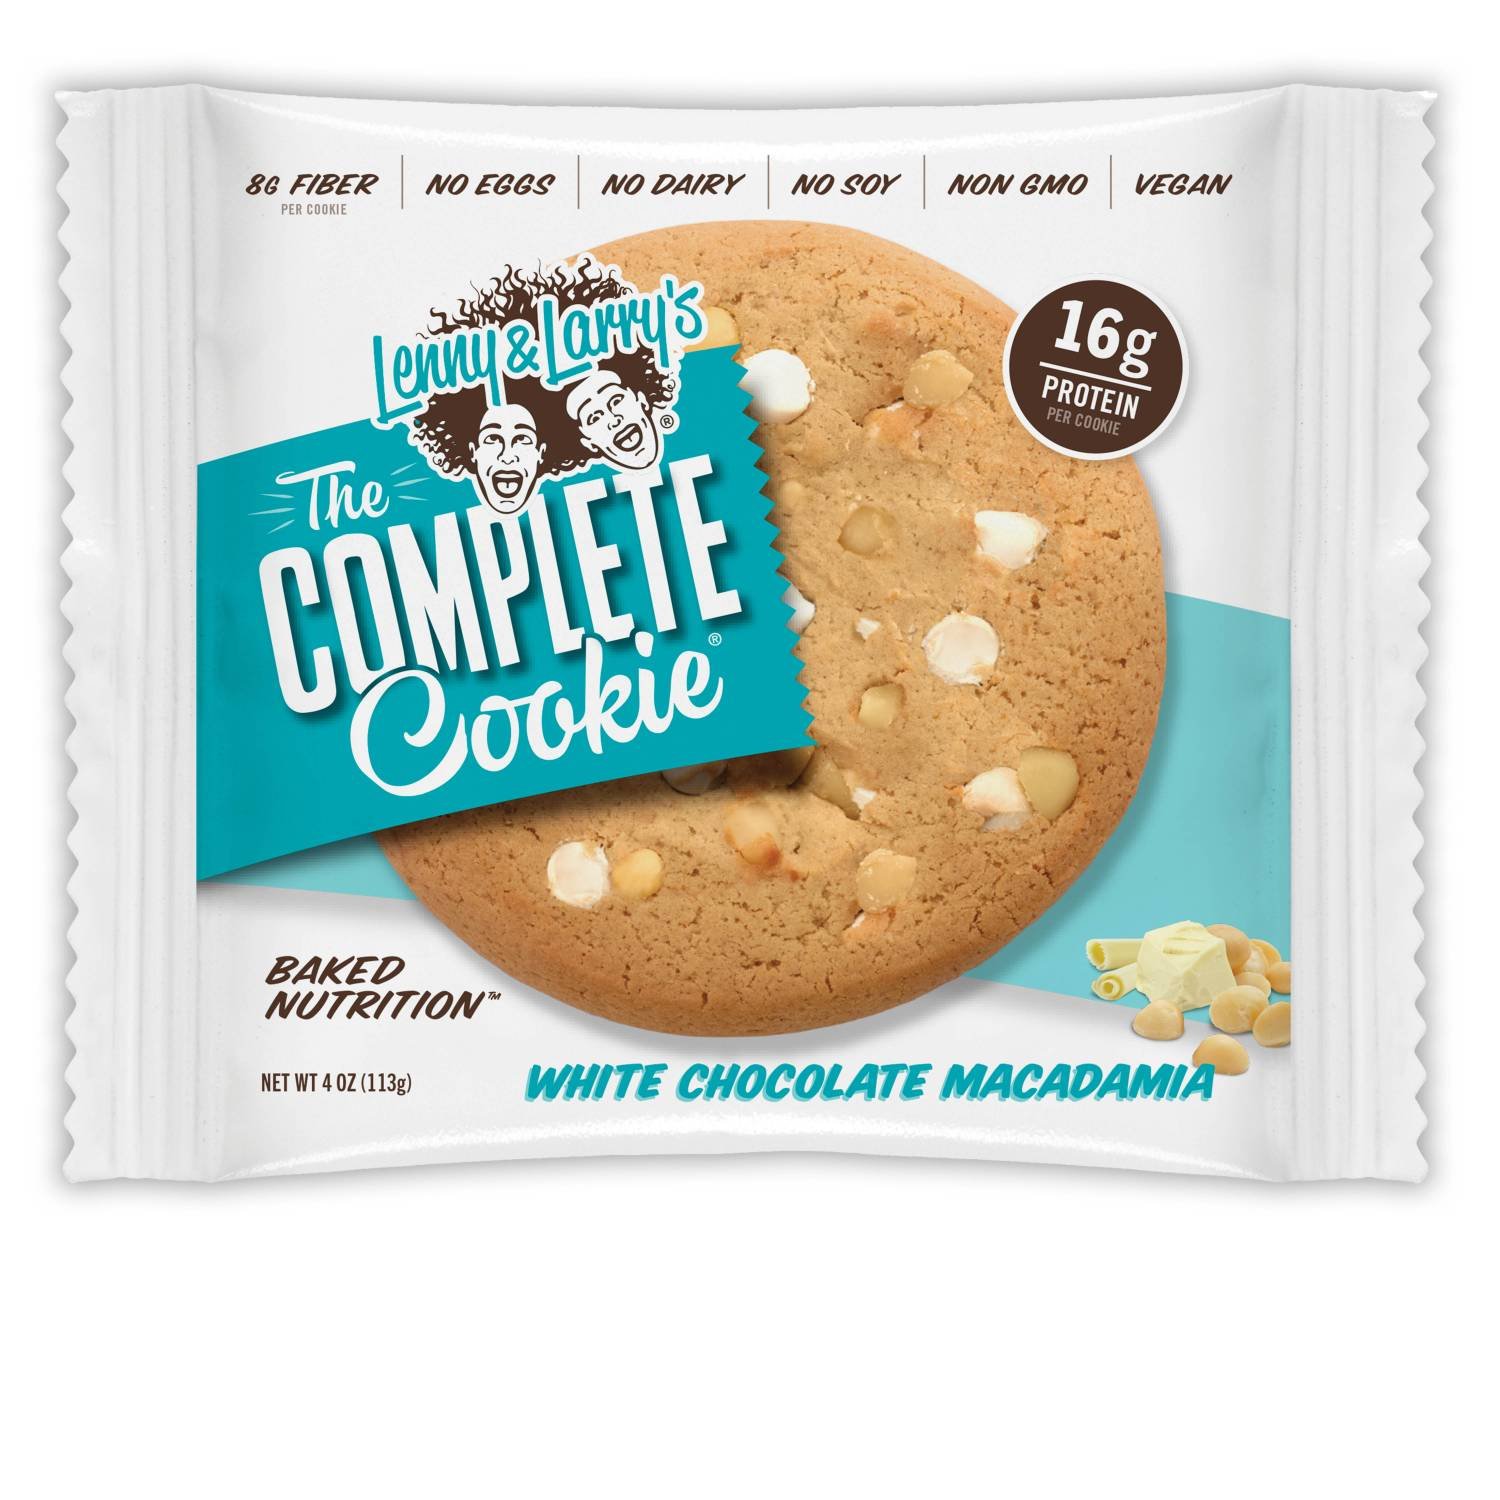 Lenny & Larry's The Complete Cookie, White Chocolate Macadamia, 16g Protein, 4 Ct